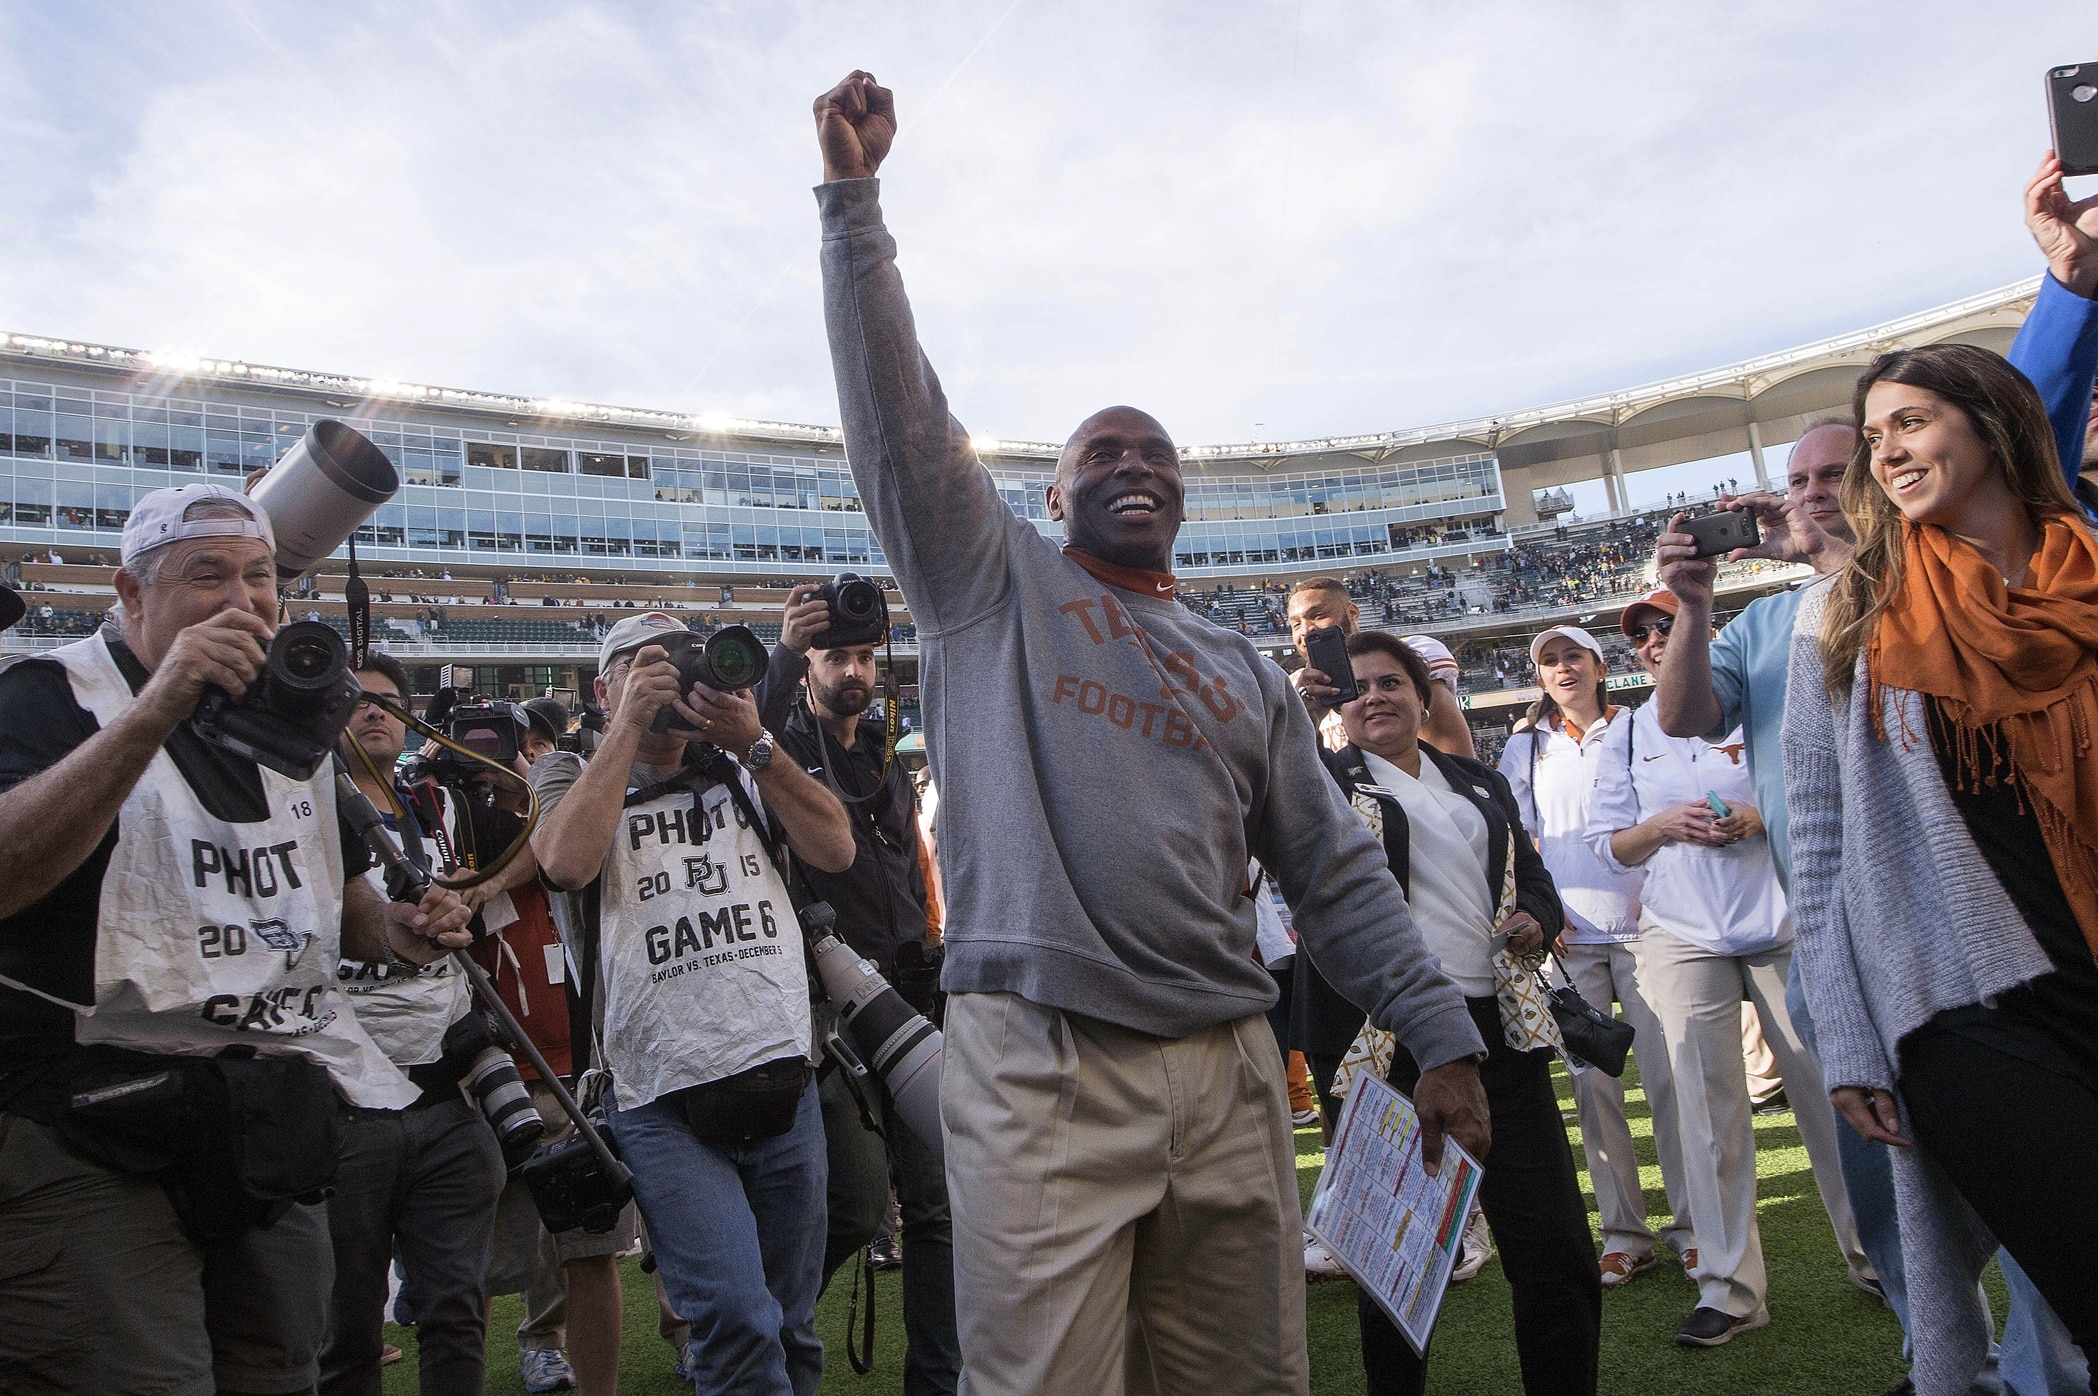 Dec 5, 2015; Waco, TX, USA; Texas Longhorns head coach Charlie Strong celebrates the win over the Baylor Bears at McLane Stadium. The Longhorns defeat the Bears 23-17. Mandatory Credit: Jerome Miron-USA TODAY Sports